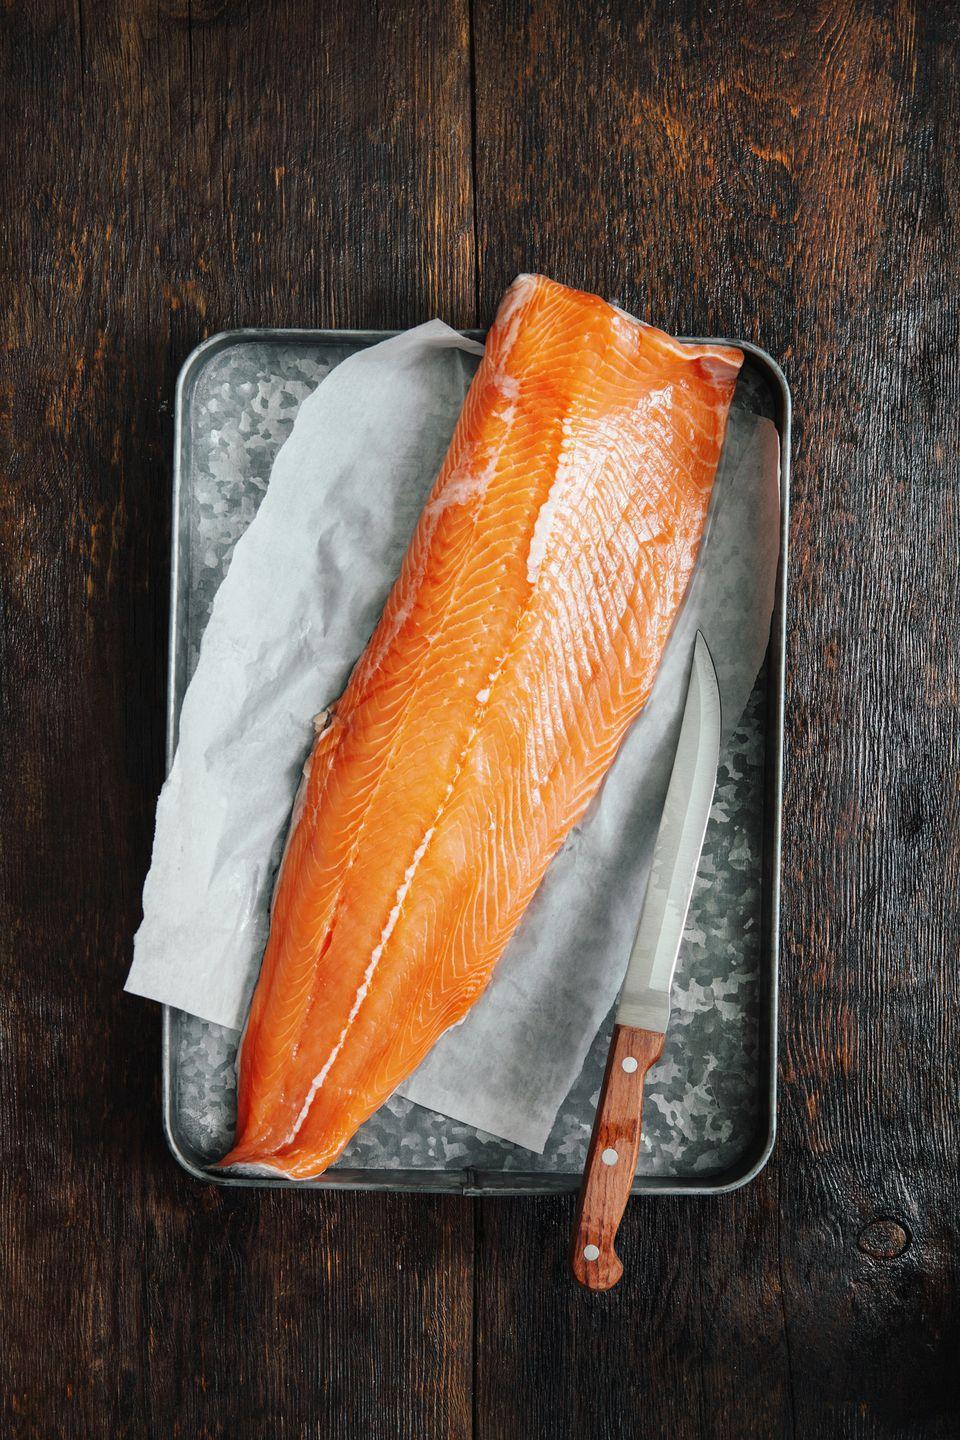 "<p>As one of nature's best sources of omega-3 fatty acids, <a href=""https://www.goodhousekeeping.com/health/diet-nutrition/a19503650/salmon-nutrition/"" rel=""nofollow noopener"" target=""_blank"" data-ylk=""slk:salmon has many health benefits"" class=""link rapid-noclick-resp"">salmon has many health benefits</a>, including reducing inflammation and triglycerides.</p><p><strong>RELATED: </strong><a href=""https://www.goodhousekeeping.com/food-recipes/healthy/g817/healthy-salmon-dinners/"" rel=""nofollow noopener"" target=""_blank"" data-ylk=""slk:16 Salmon Dinners That Are Super Healthy"" class=""link rapid-noclick-resp"">16 Salmon Dinners That Are Super Healthy</a></p>"